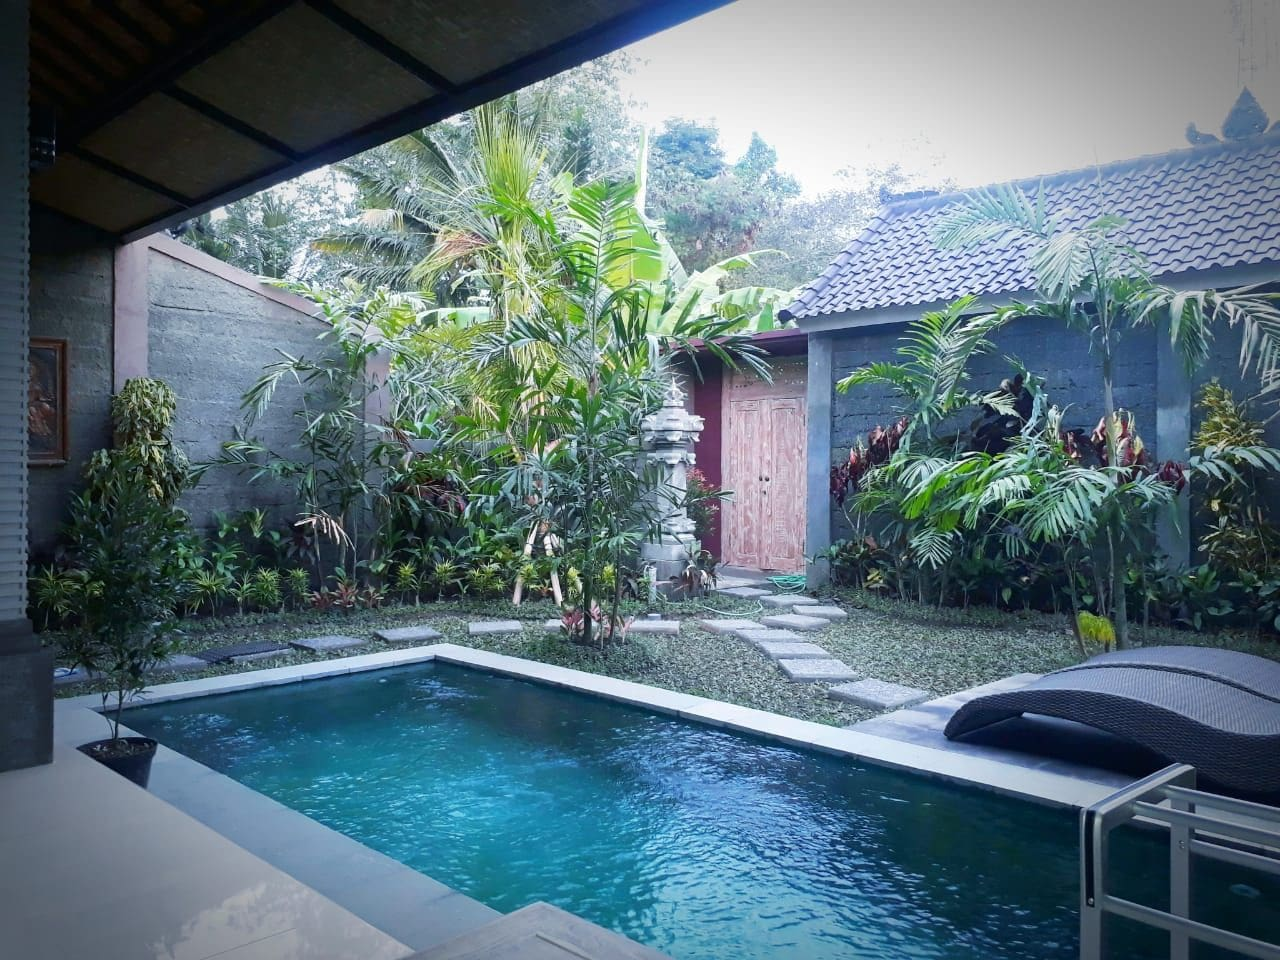 Private Pool and garden area